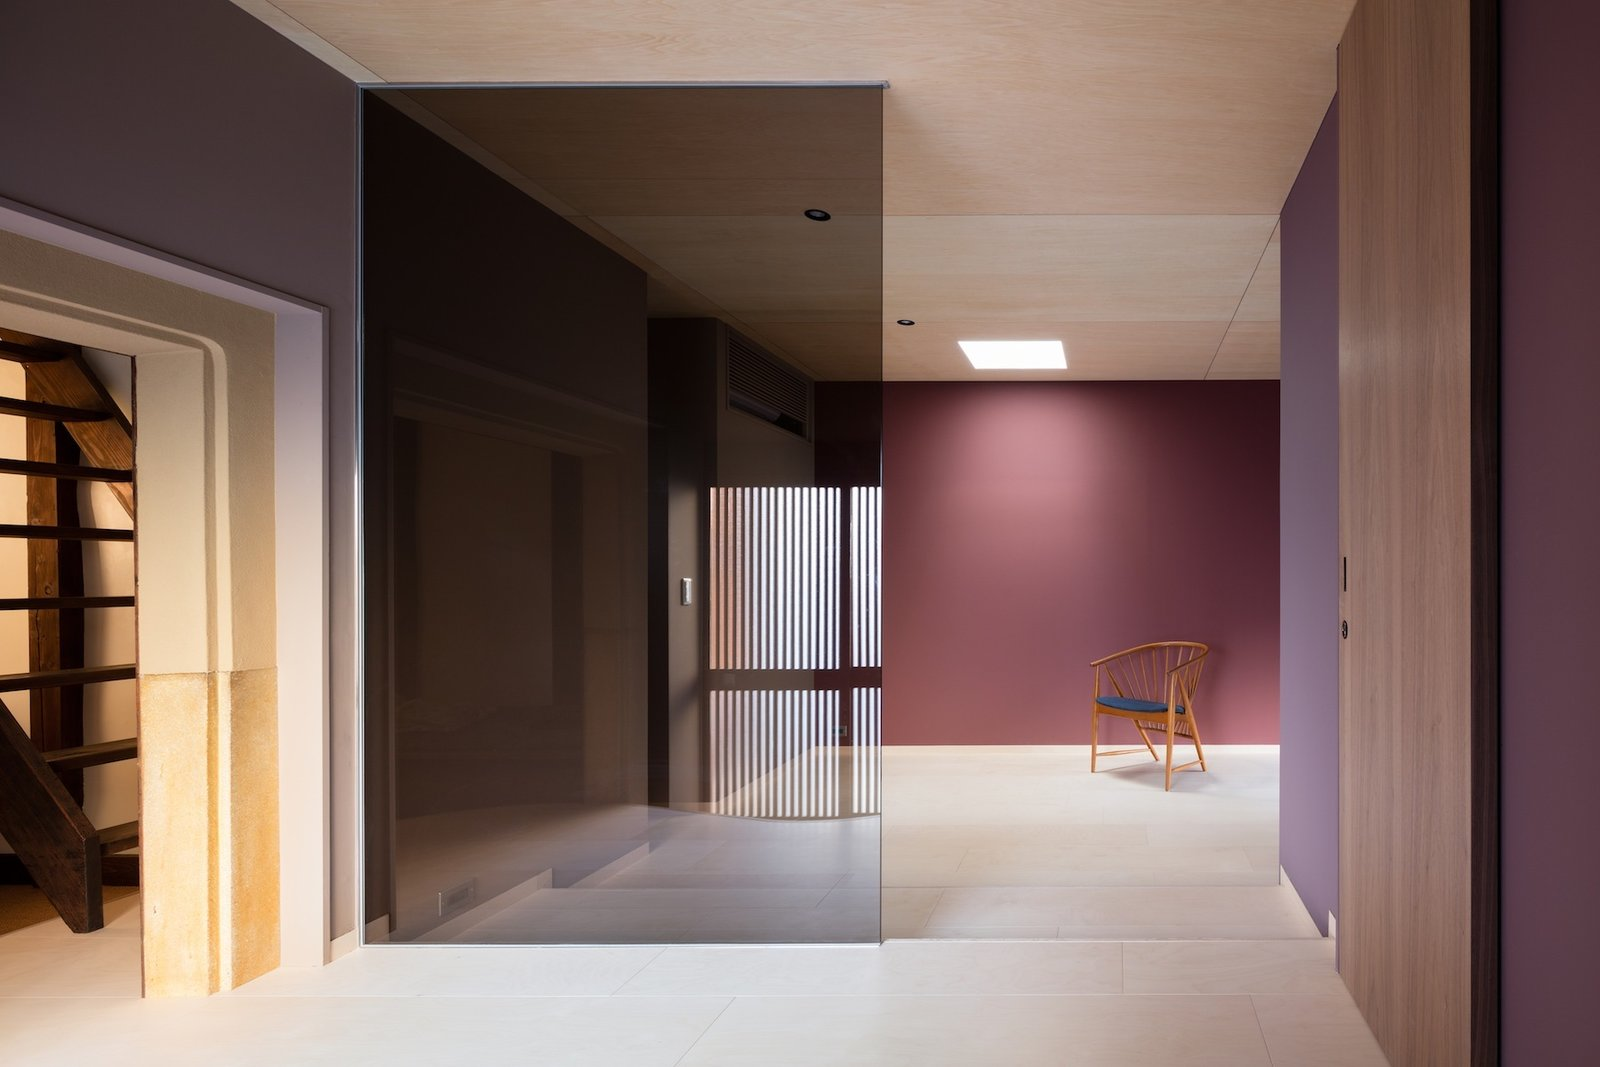 Living Room, Chair, and Recessed Lighting  Nichinichi Townhouse from A Minimalist Townhouse Provides Serene Accommodations in Historic Kyoto